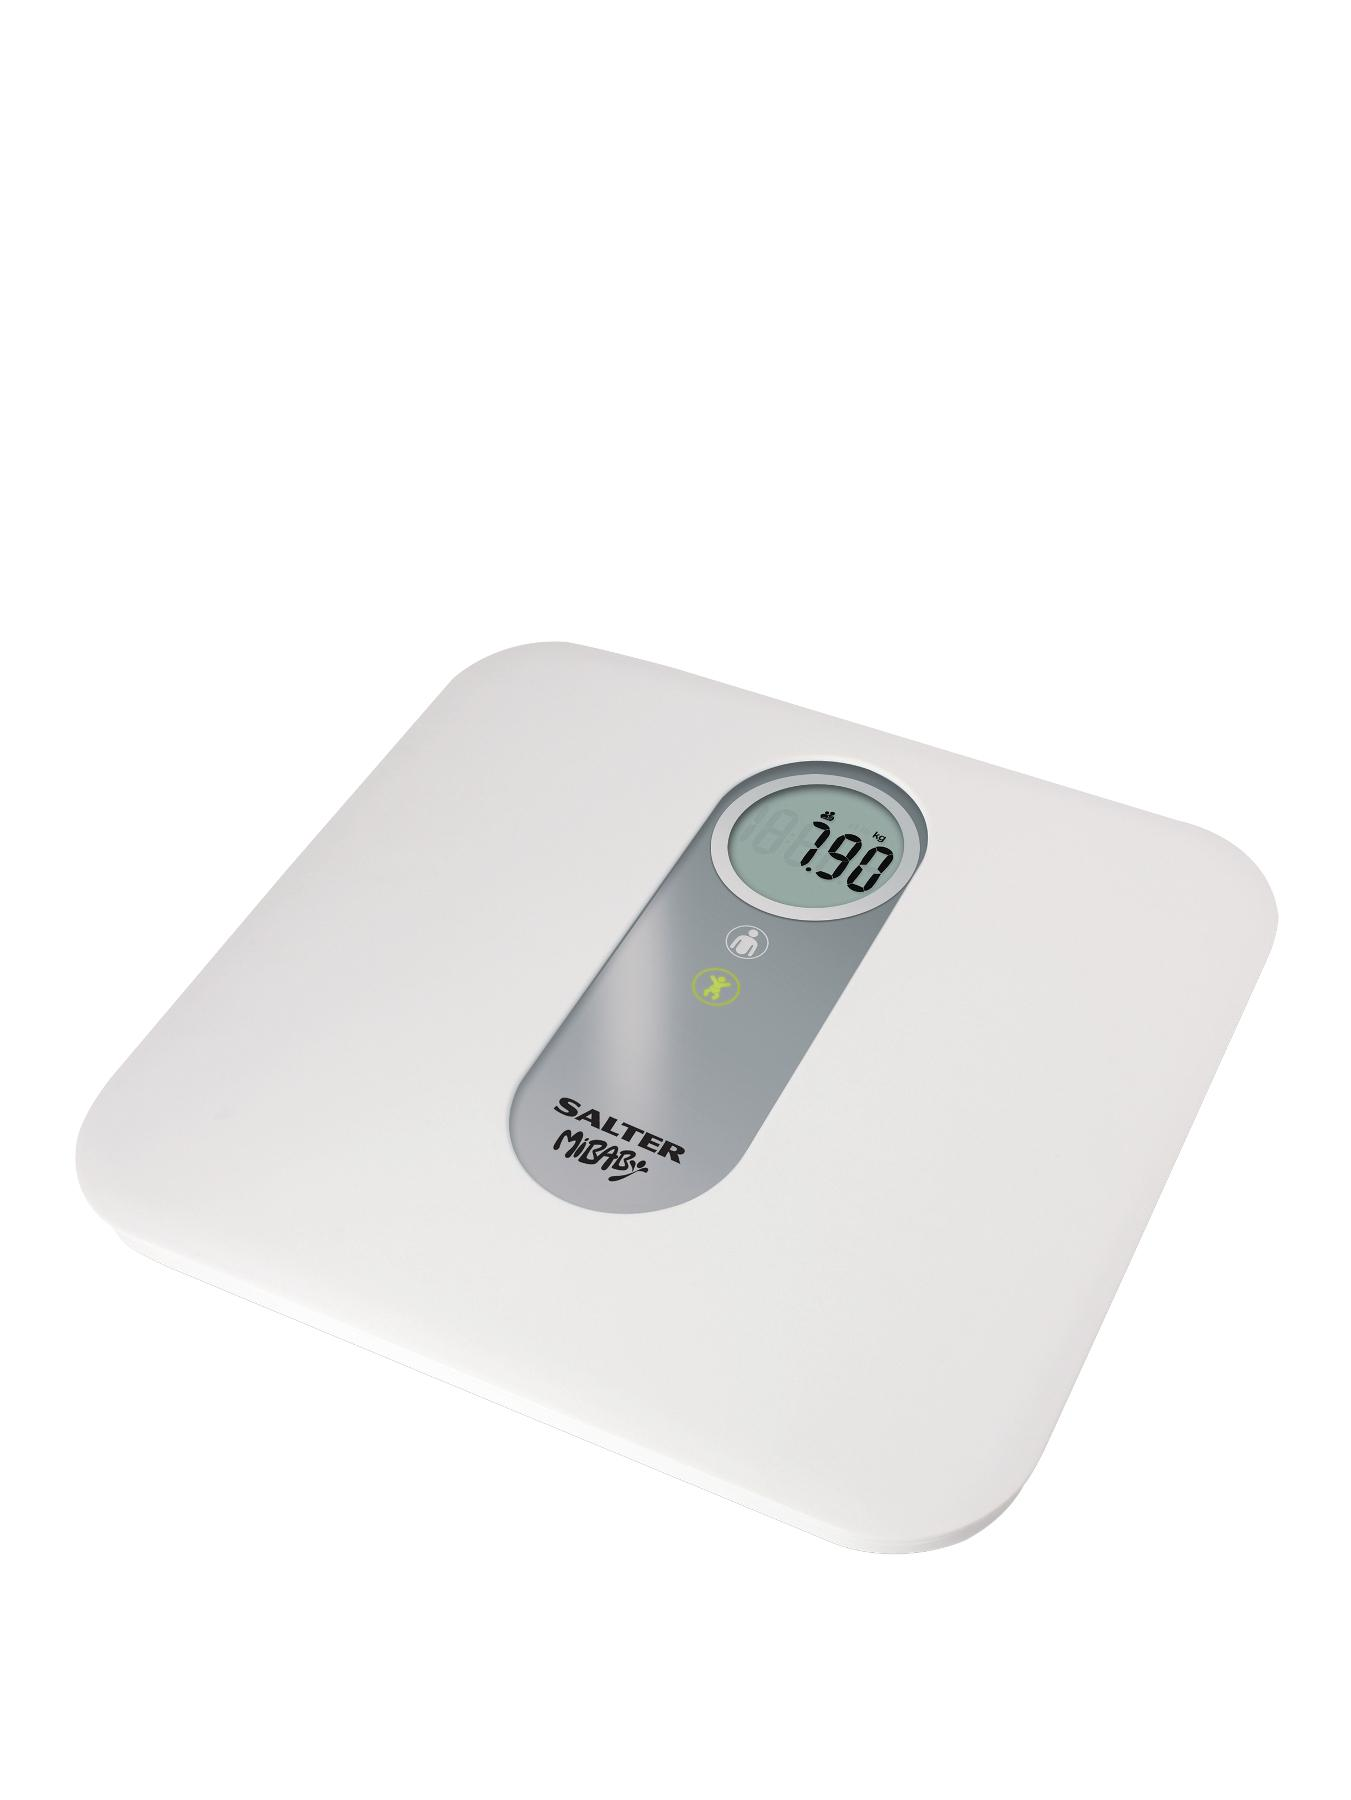 MIBaby - Mother and Baby Scale